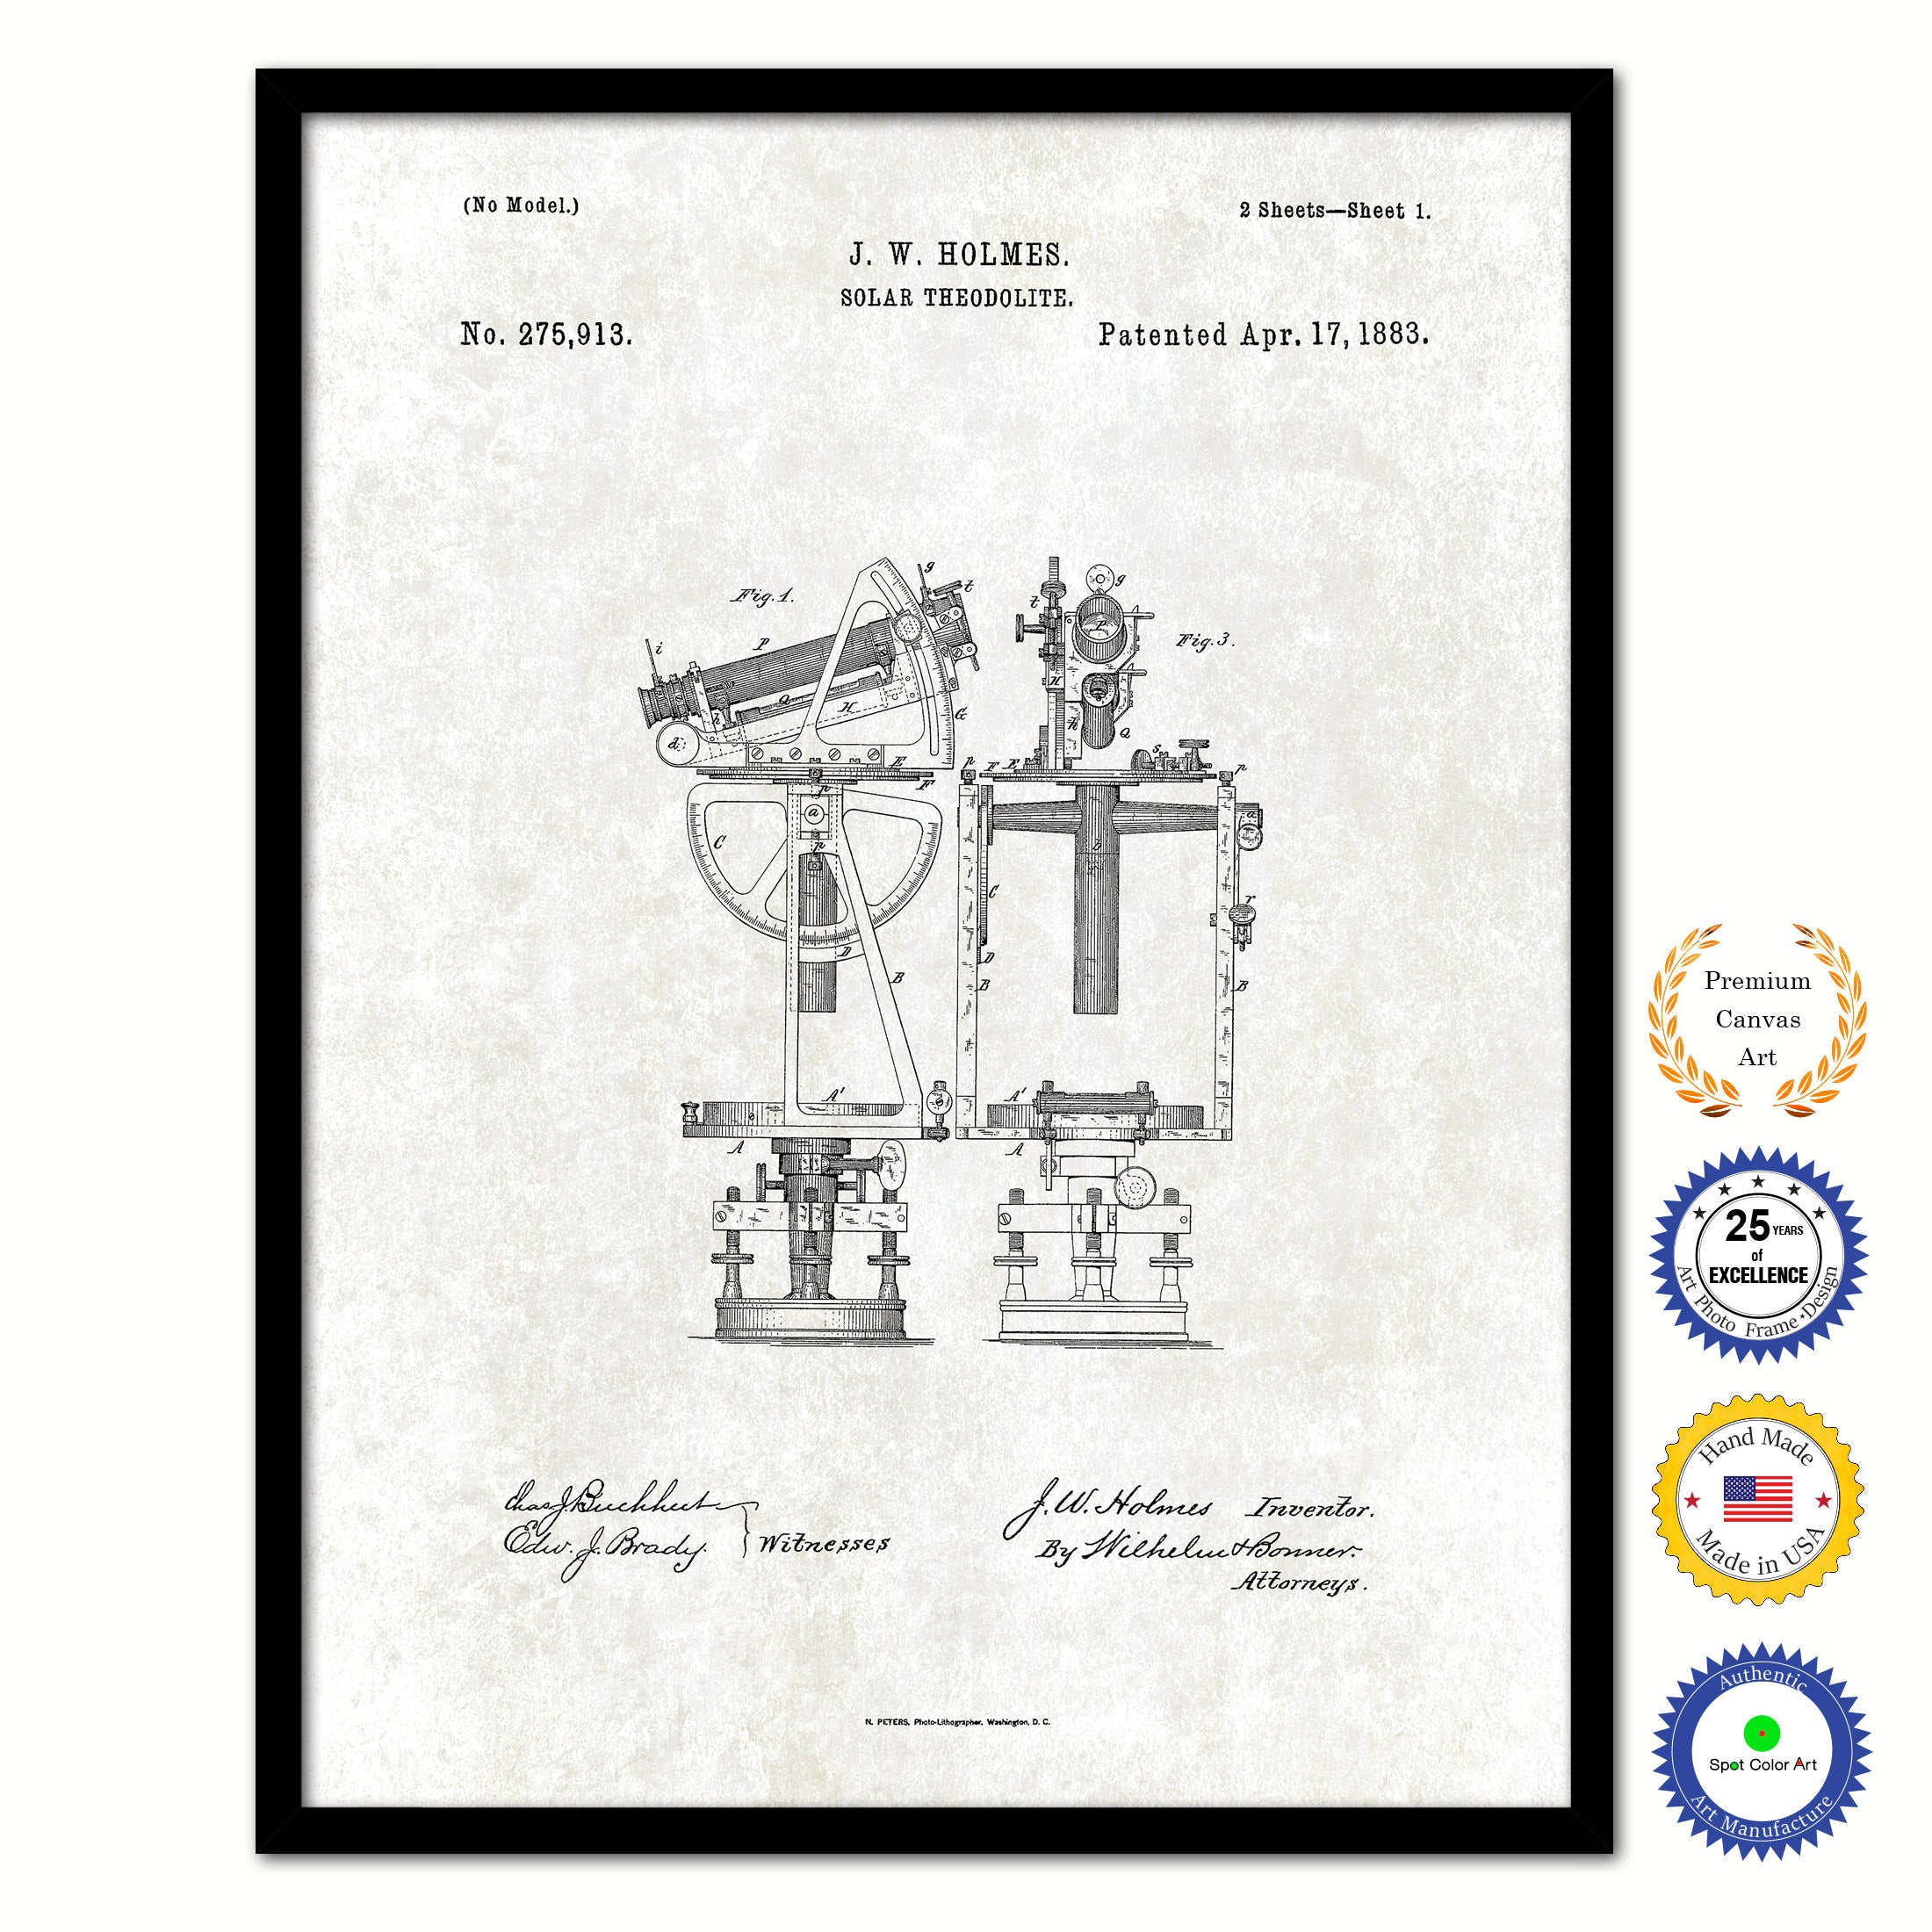 1883 Solar Theodolite Old Patent Art Print on Canvas Custom Framed Vintage Home Decor Wall Decoration Great for Gifts